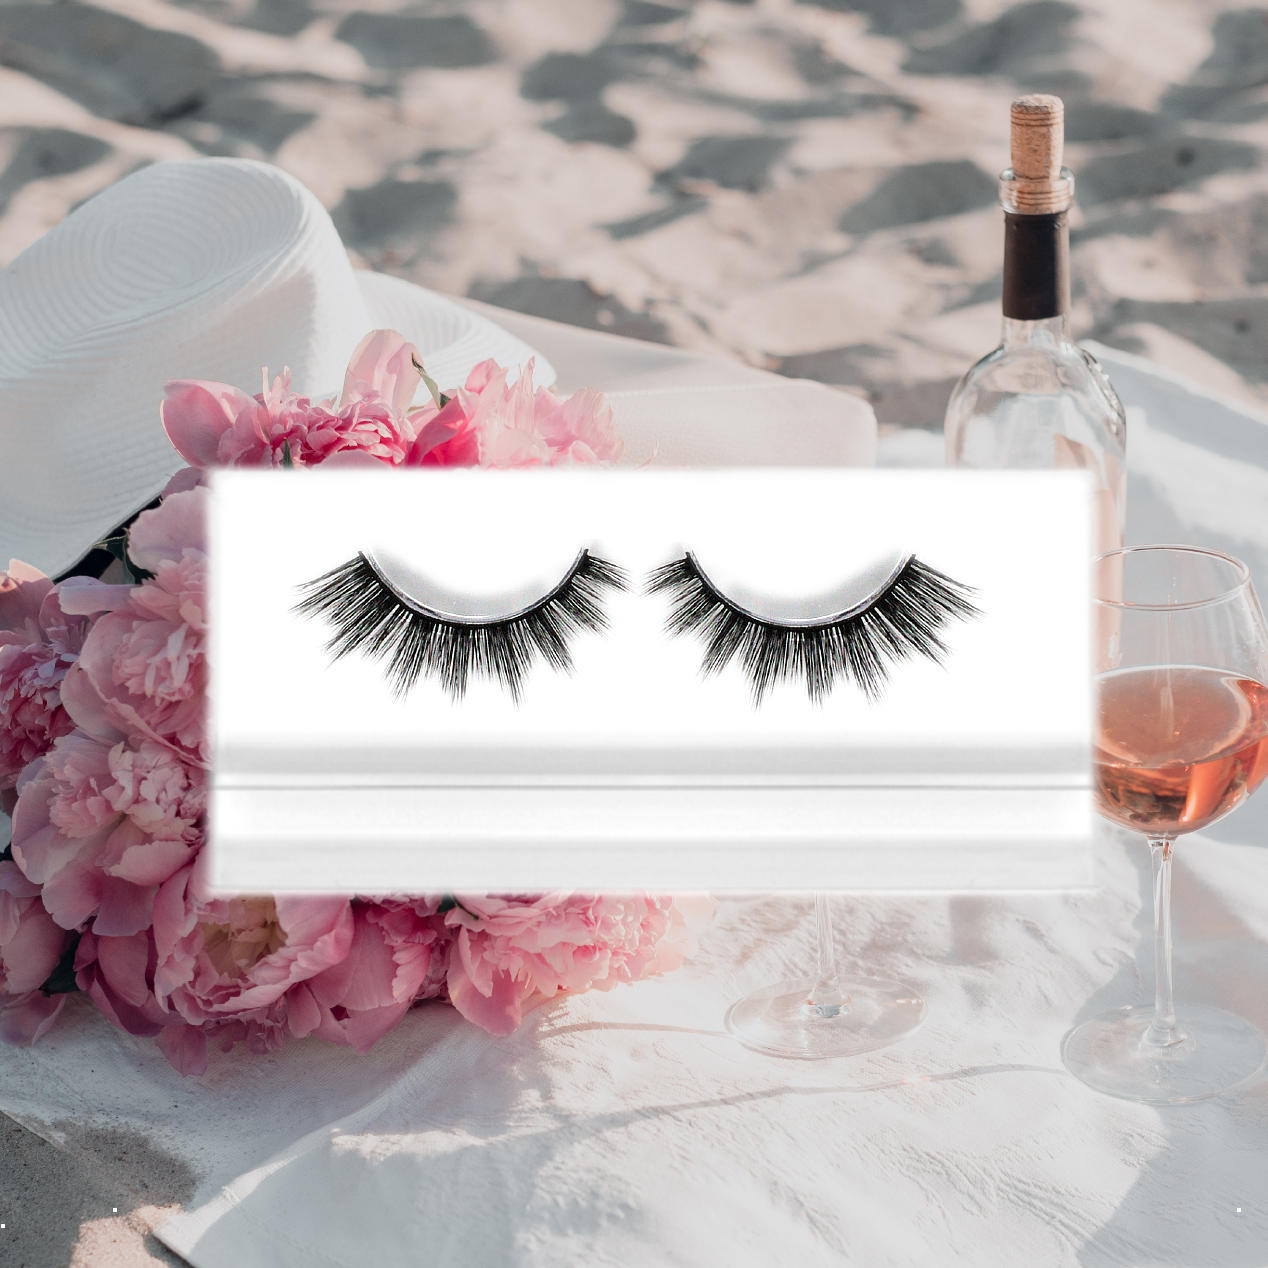 wispy styled volume base lashes with pink peonies beach champagne beach background